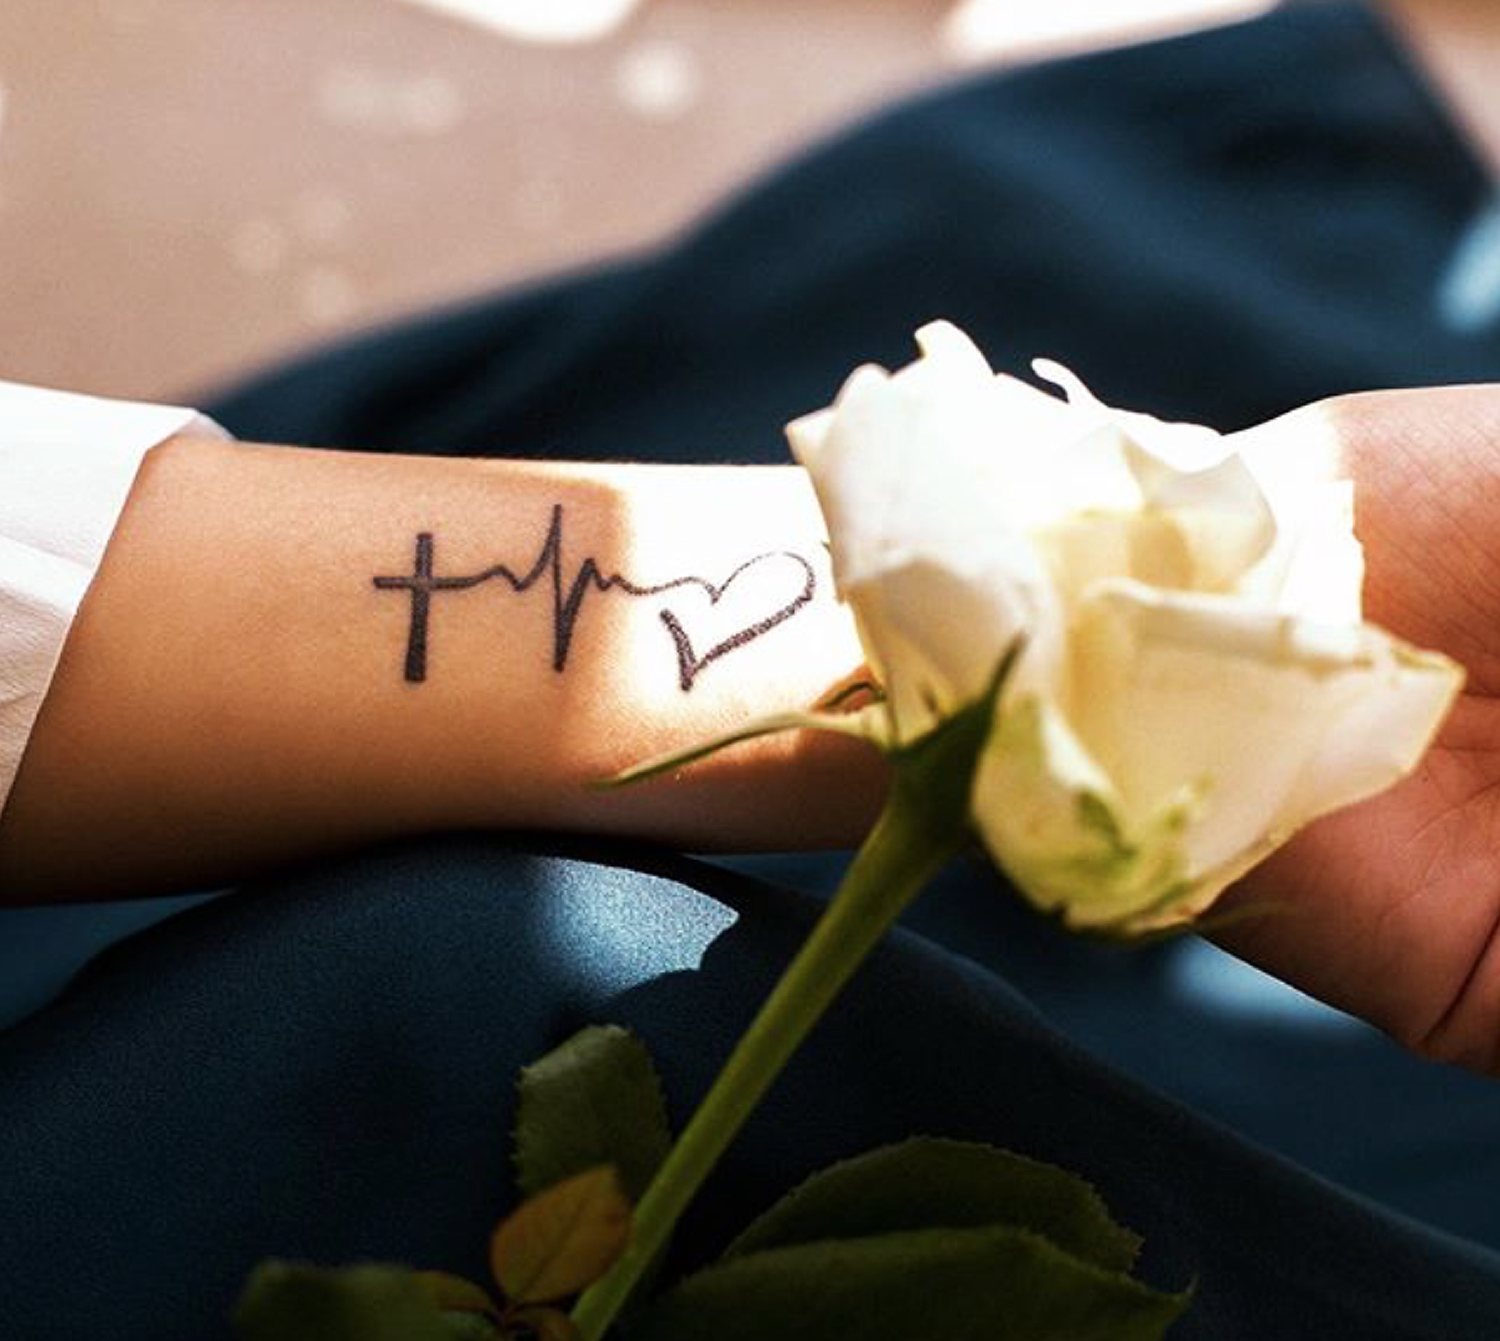 My_Tattoos_and_What_They_Mean_3_Christ_Heartbeat_Love